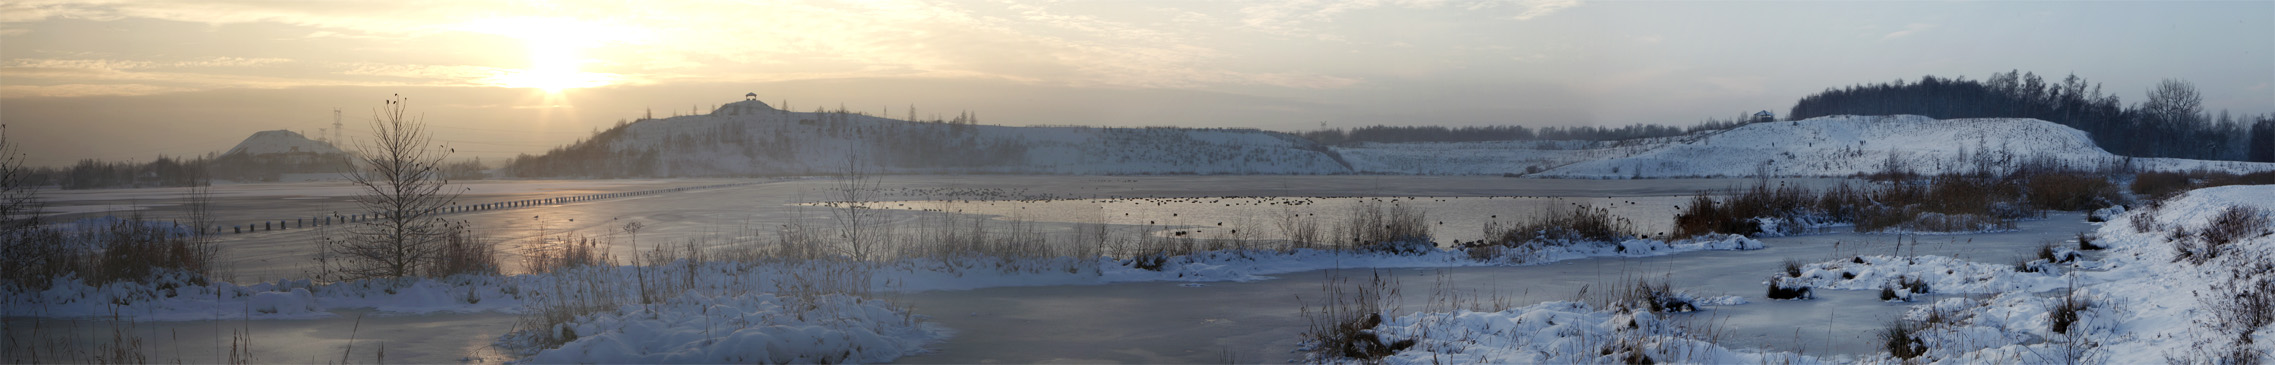 Panorama hiver lac Rieulay